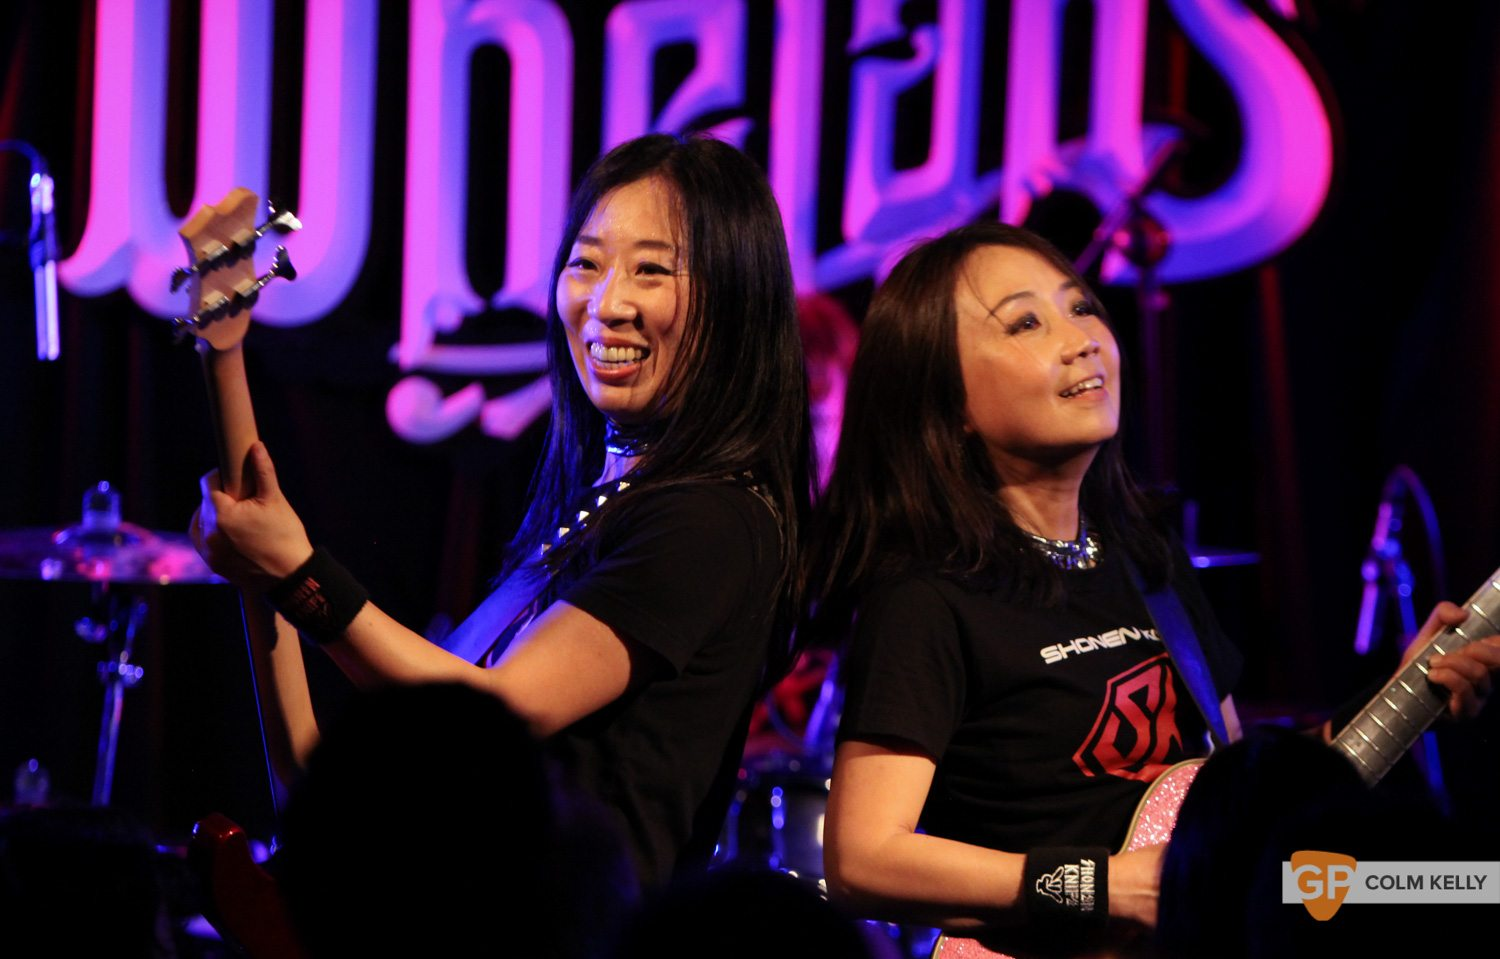 Shonen Knife at Wheans by Colm Kelly